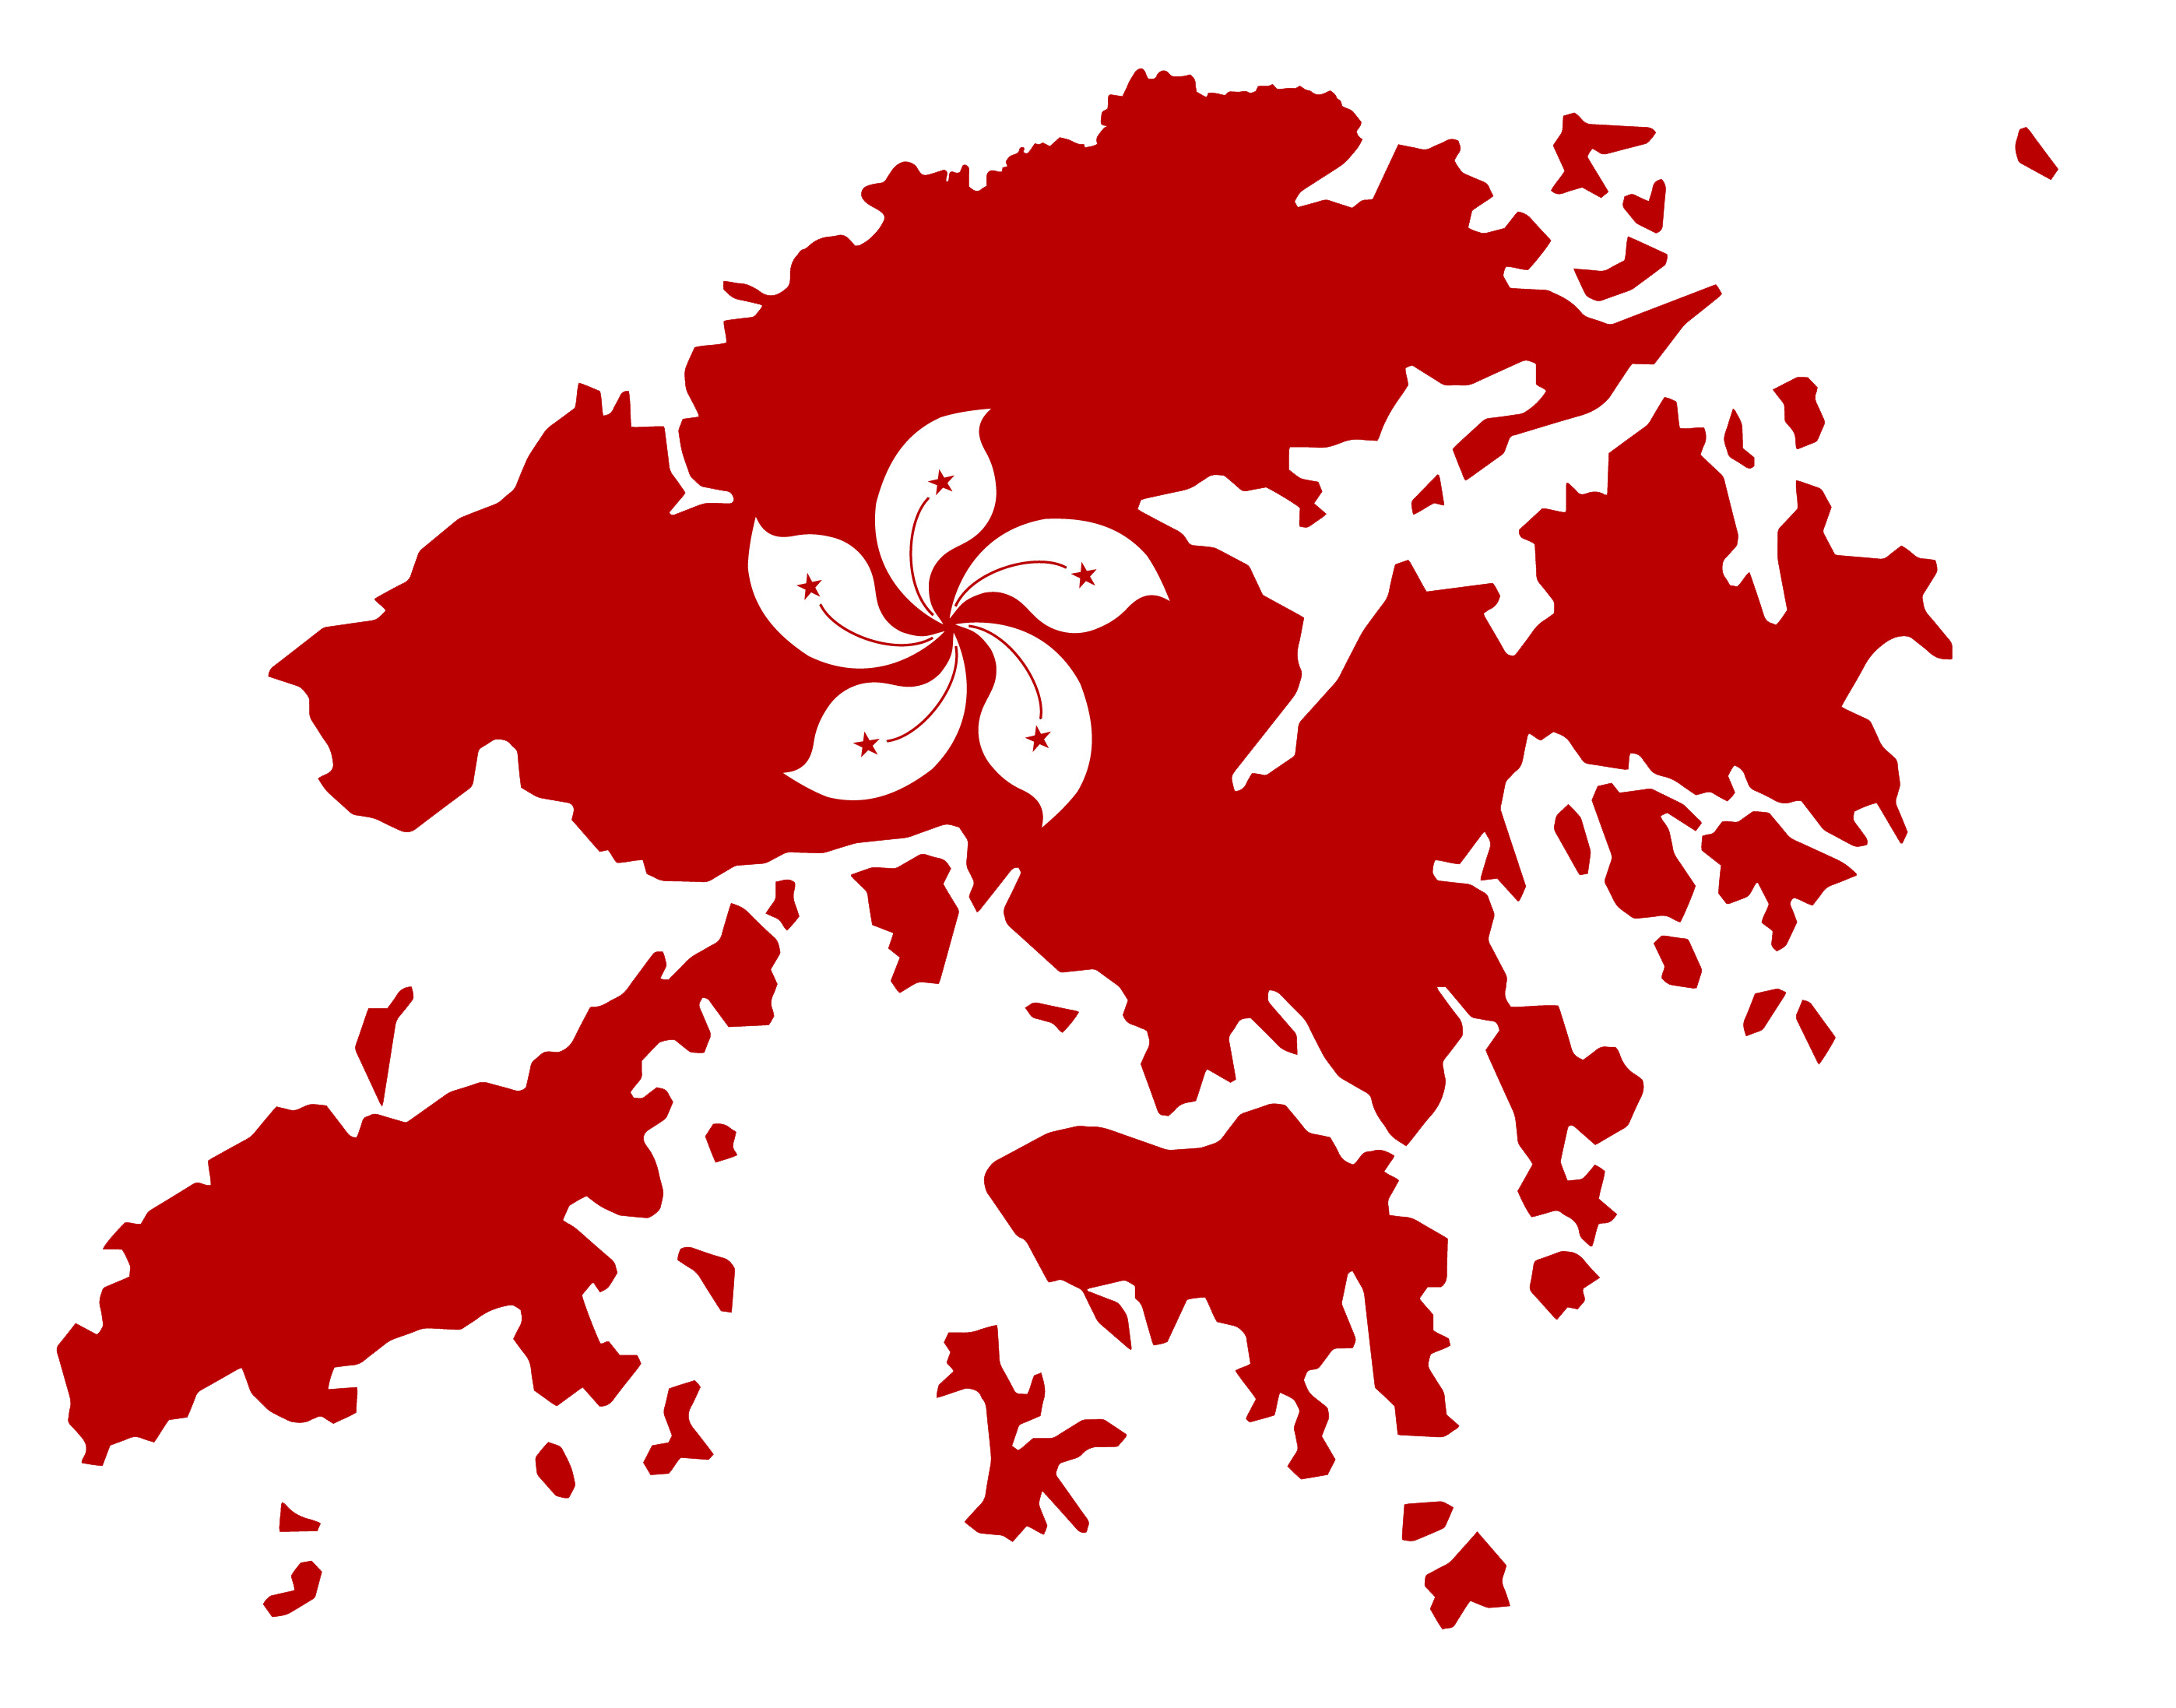 Map of Hong Kong with flag overlay